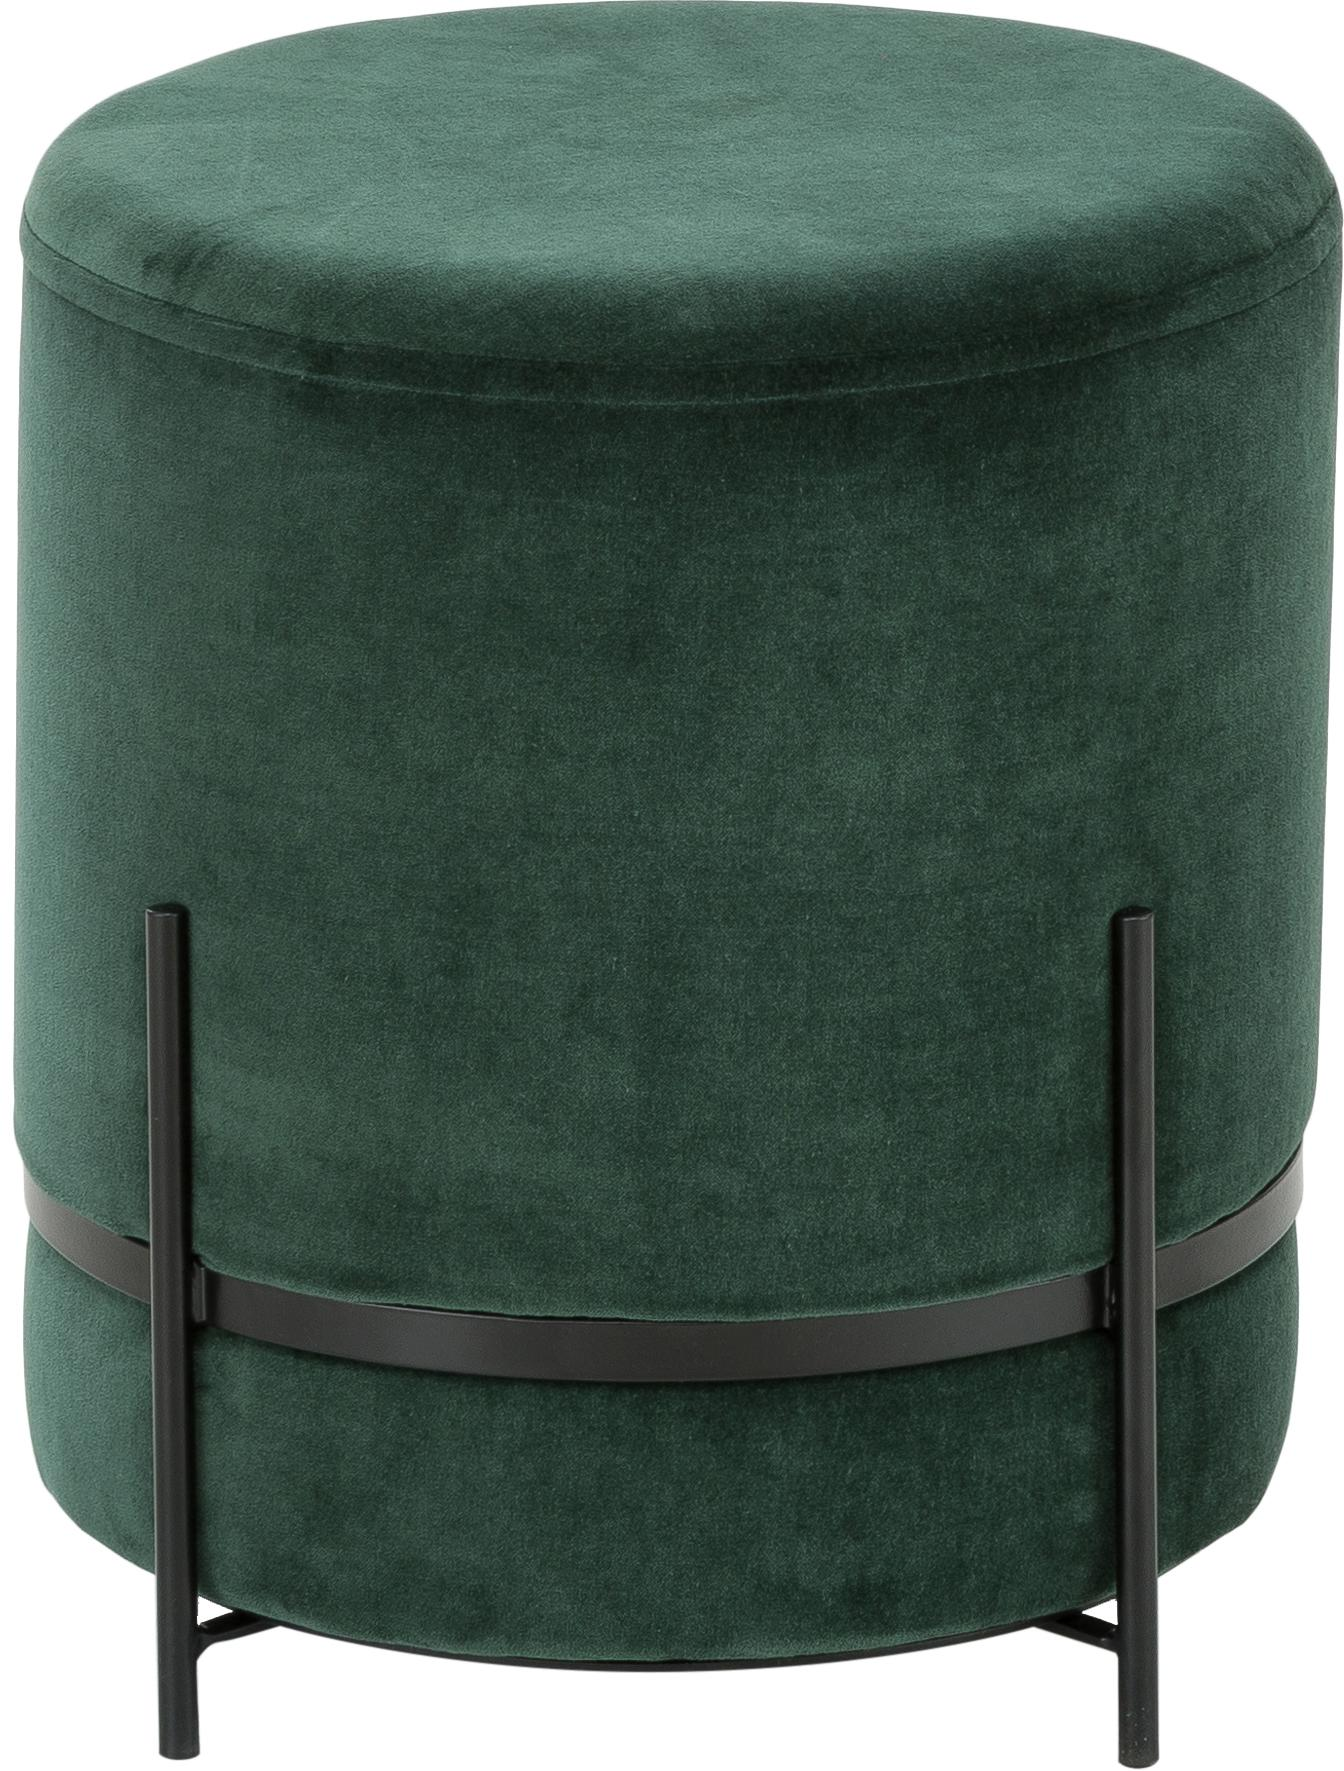 Pouf in velluto Haven, Rivestimento: velluto, Verde scuro, nero, Ø 38 x A 45 cm